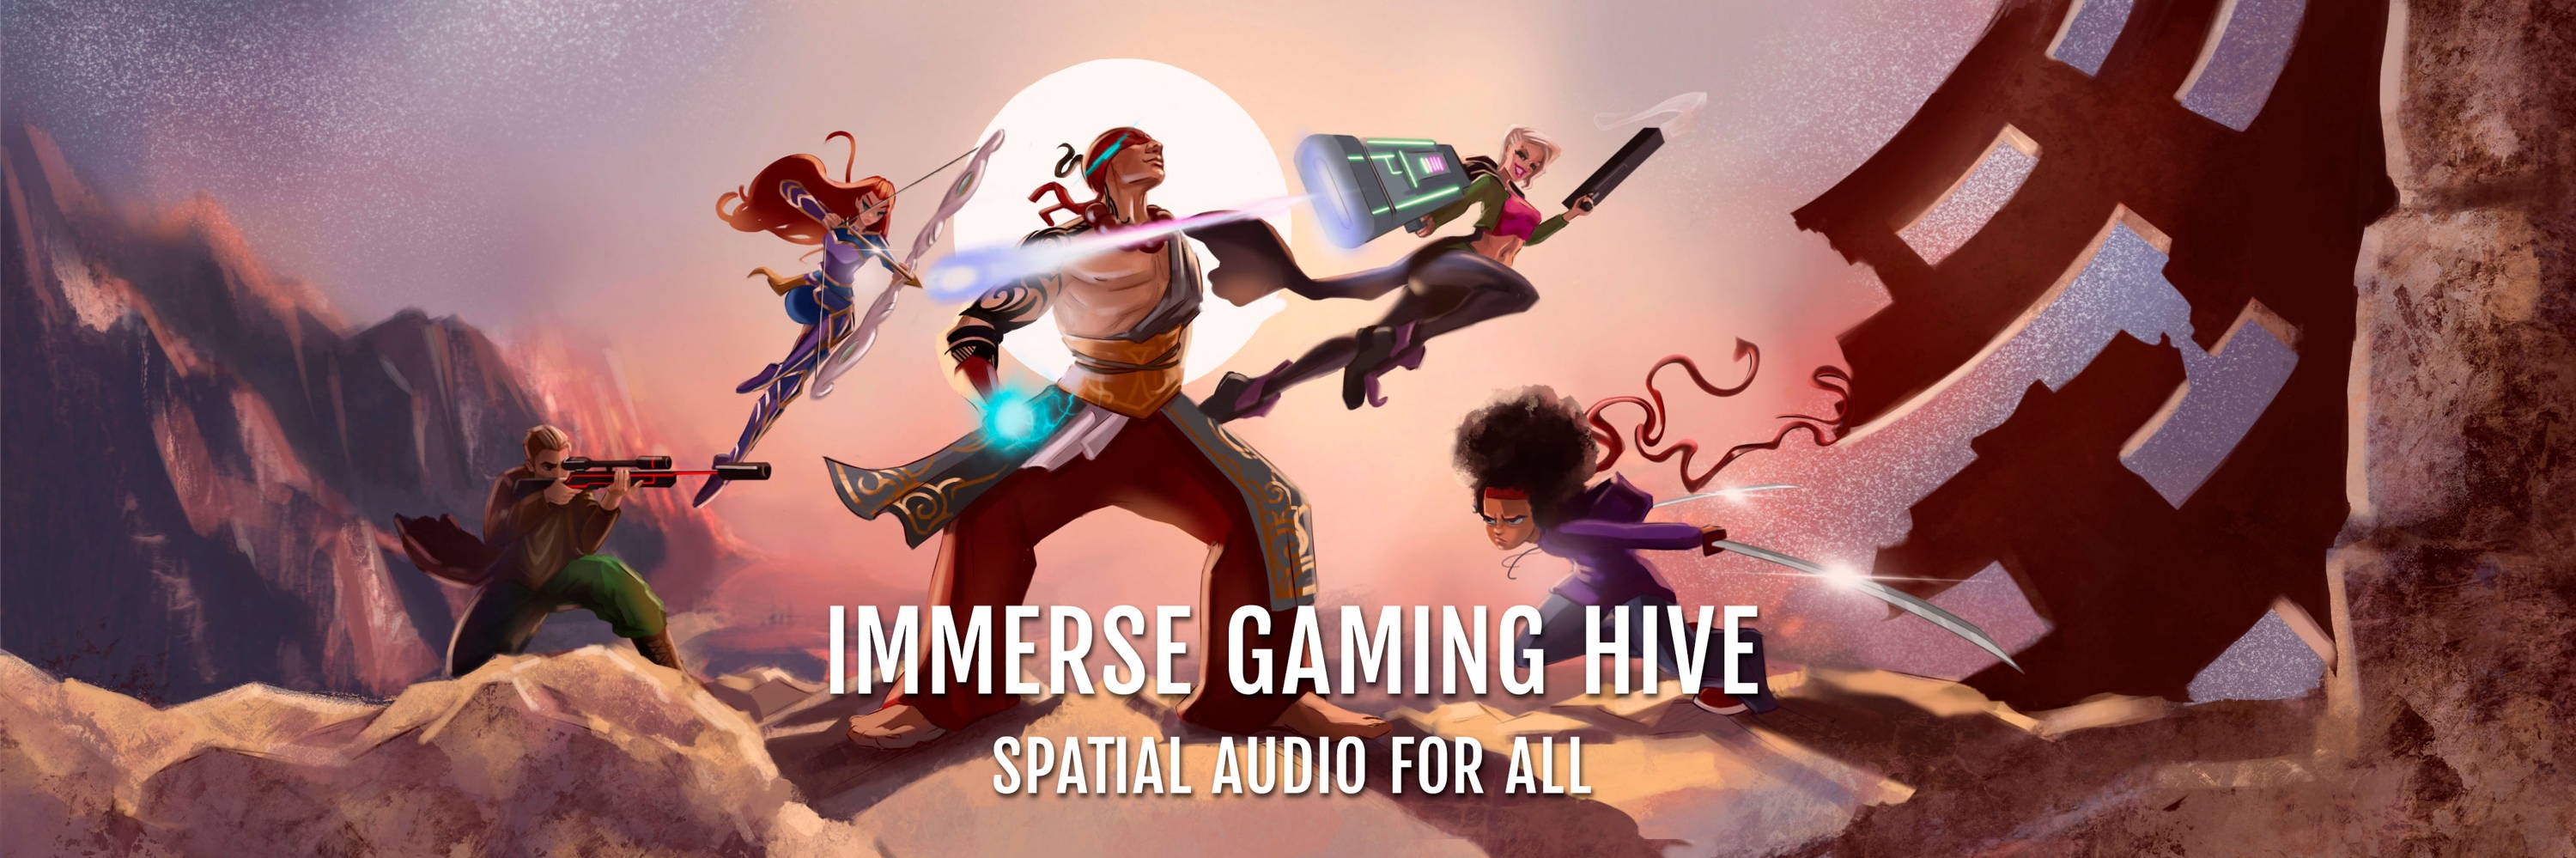 Immerse Gaming | HIVE. Spatial Audio for All